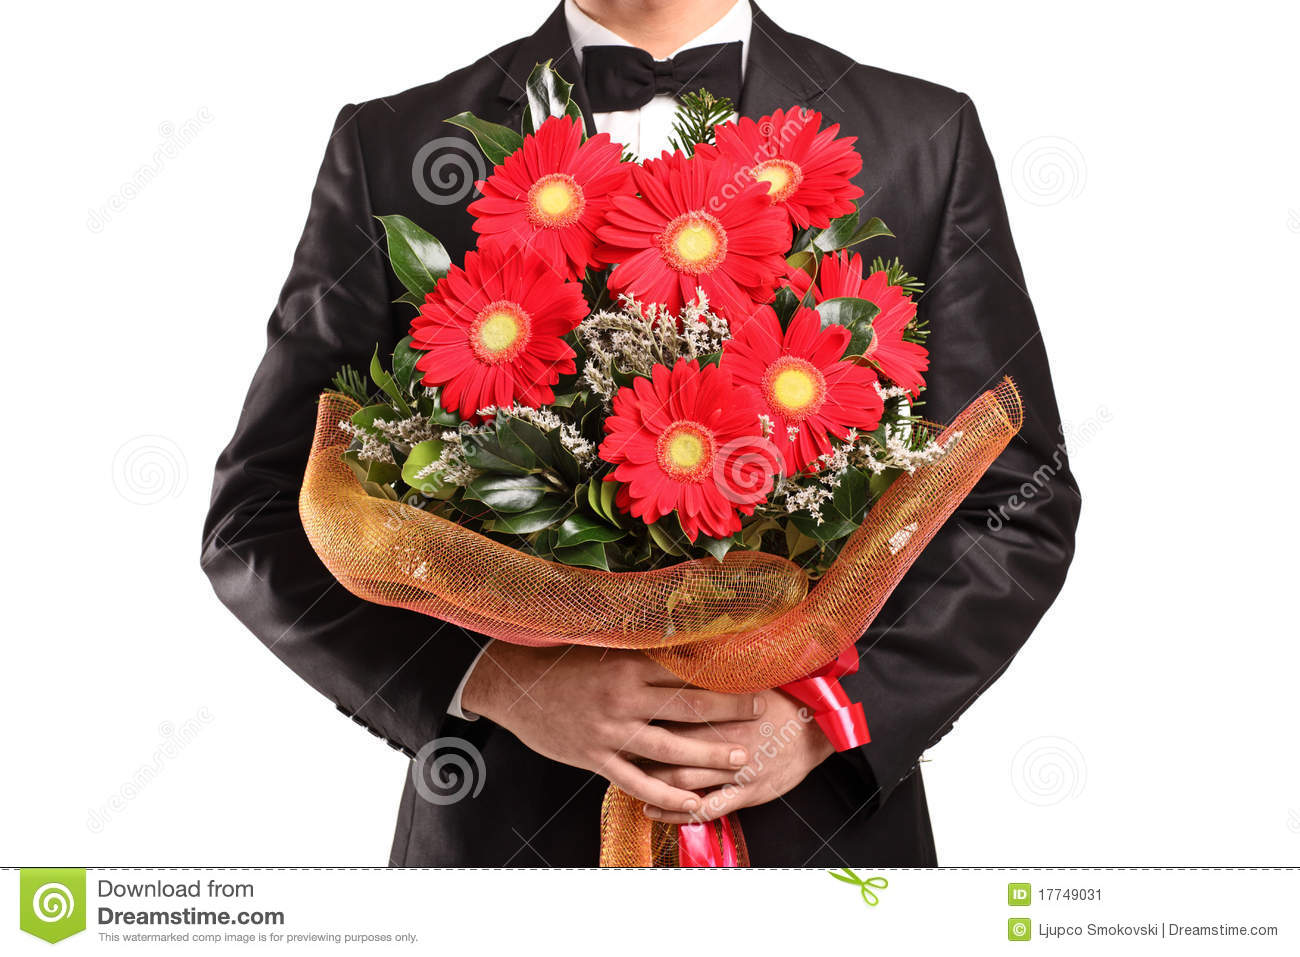 Pretty bouquet of flowers for a man gallery wedding and flowers a man holding a large bouquet of flowers stock image image of izmirmasajfo Image collections